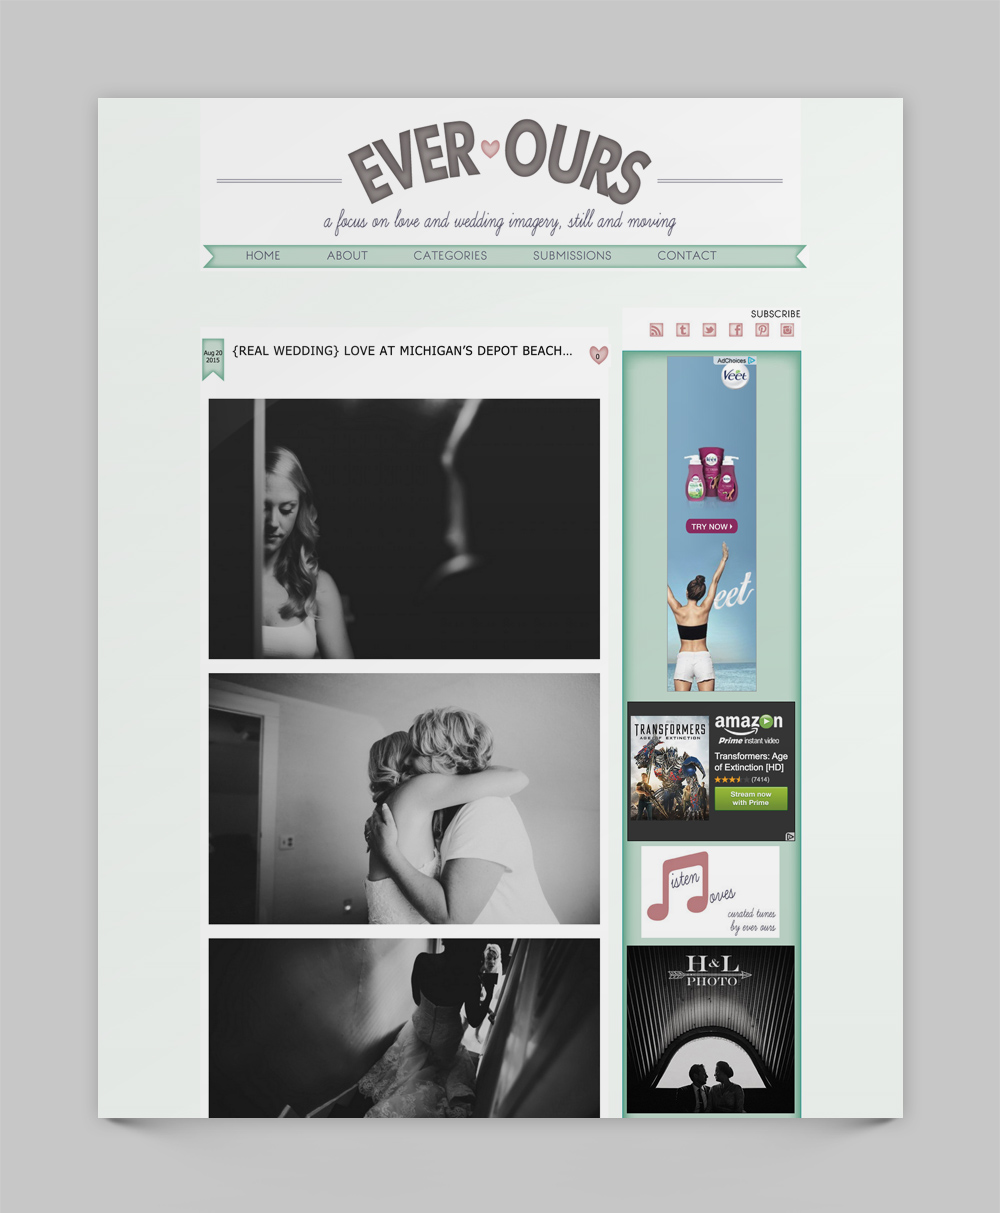 ever-ours-feature-8-20-15